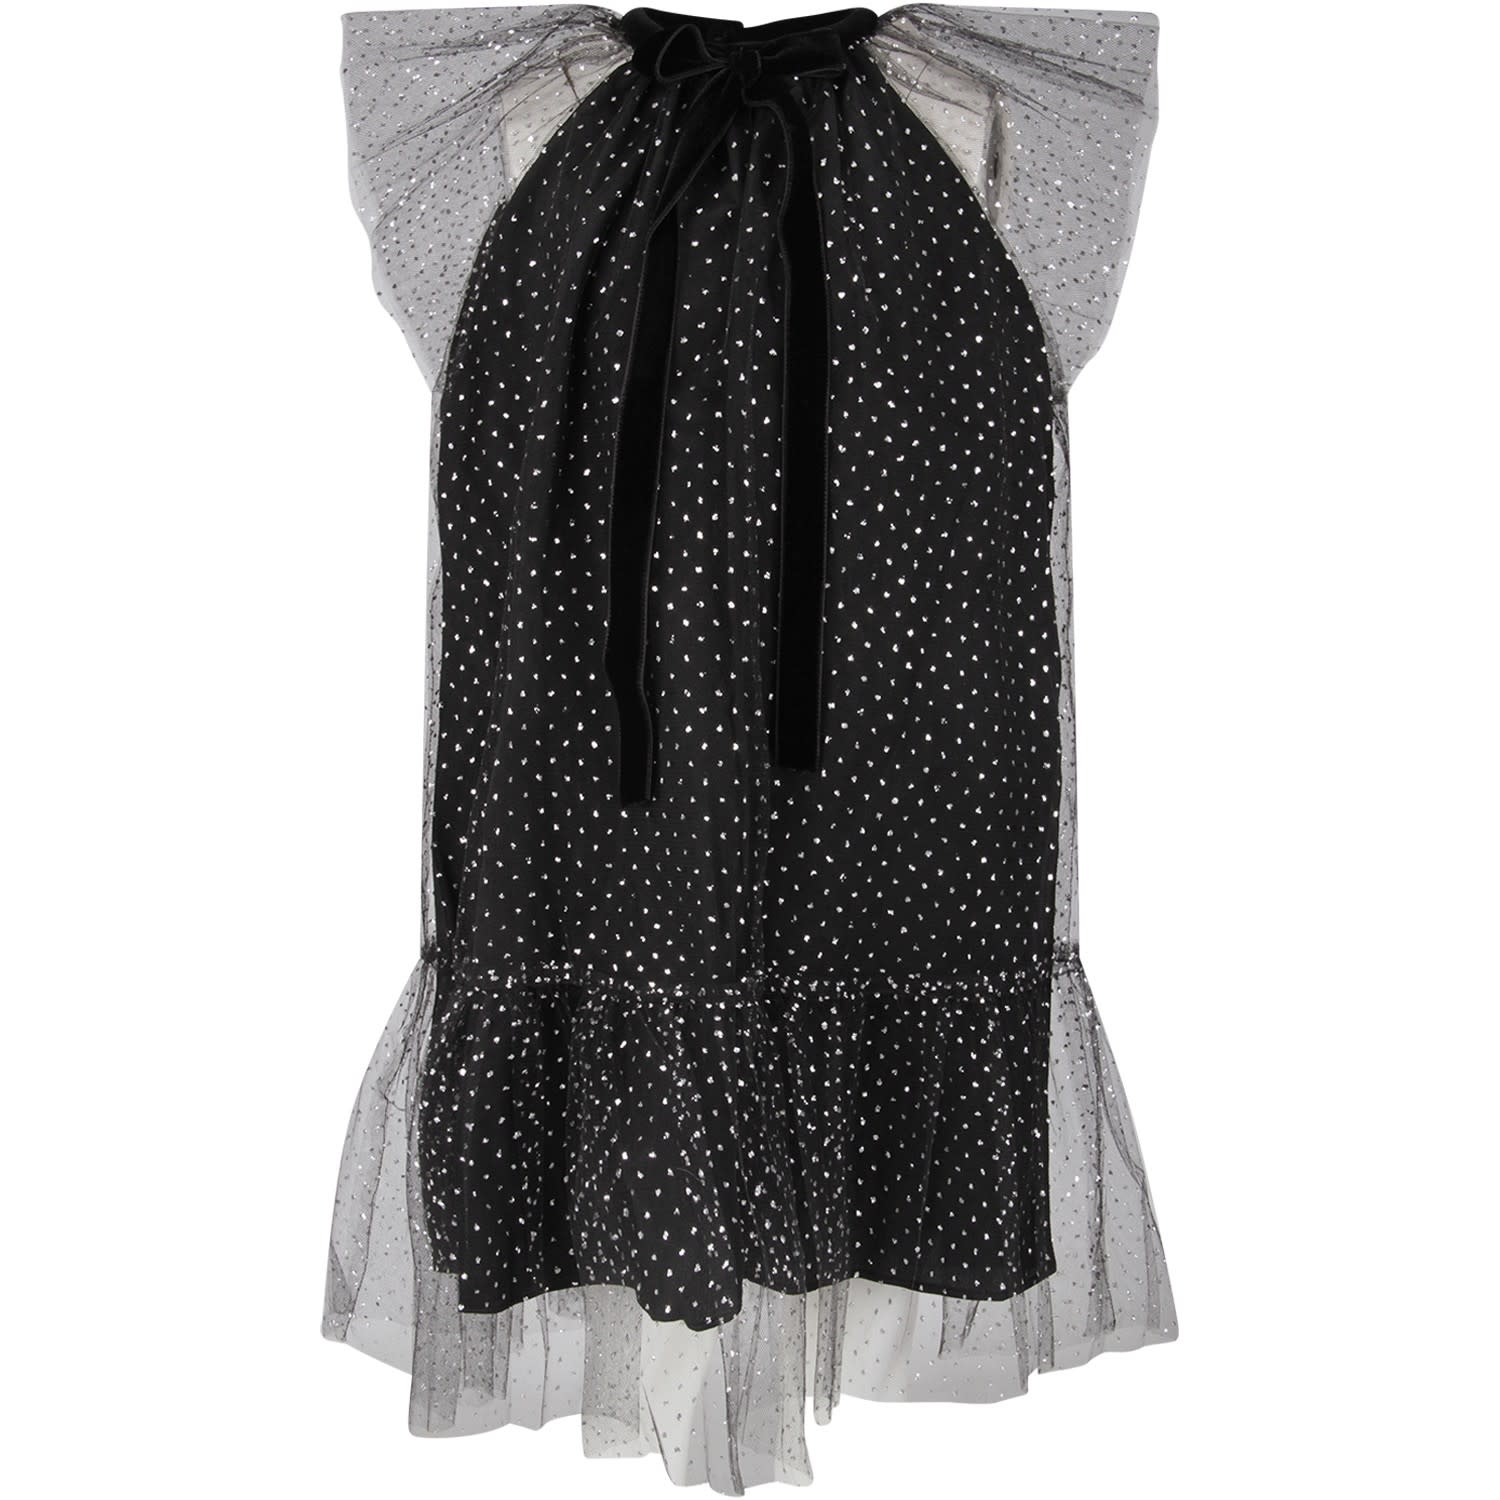 Oscar de la Renta Black Girl Dress With Silver Polka-dots